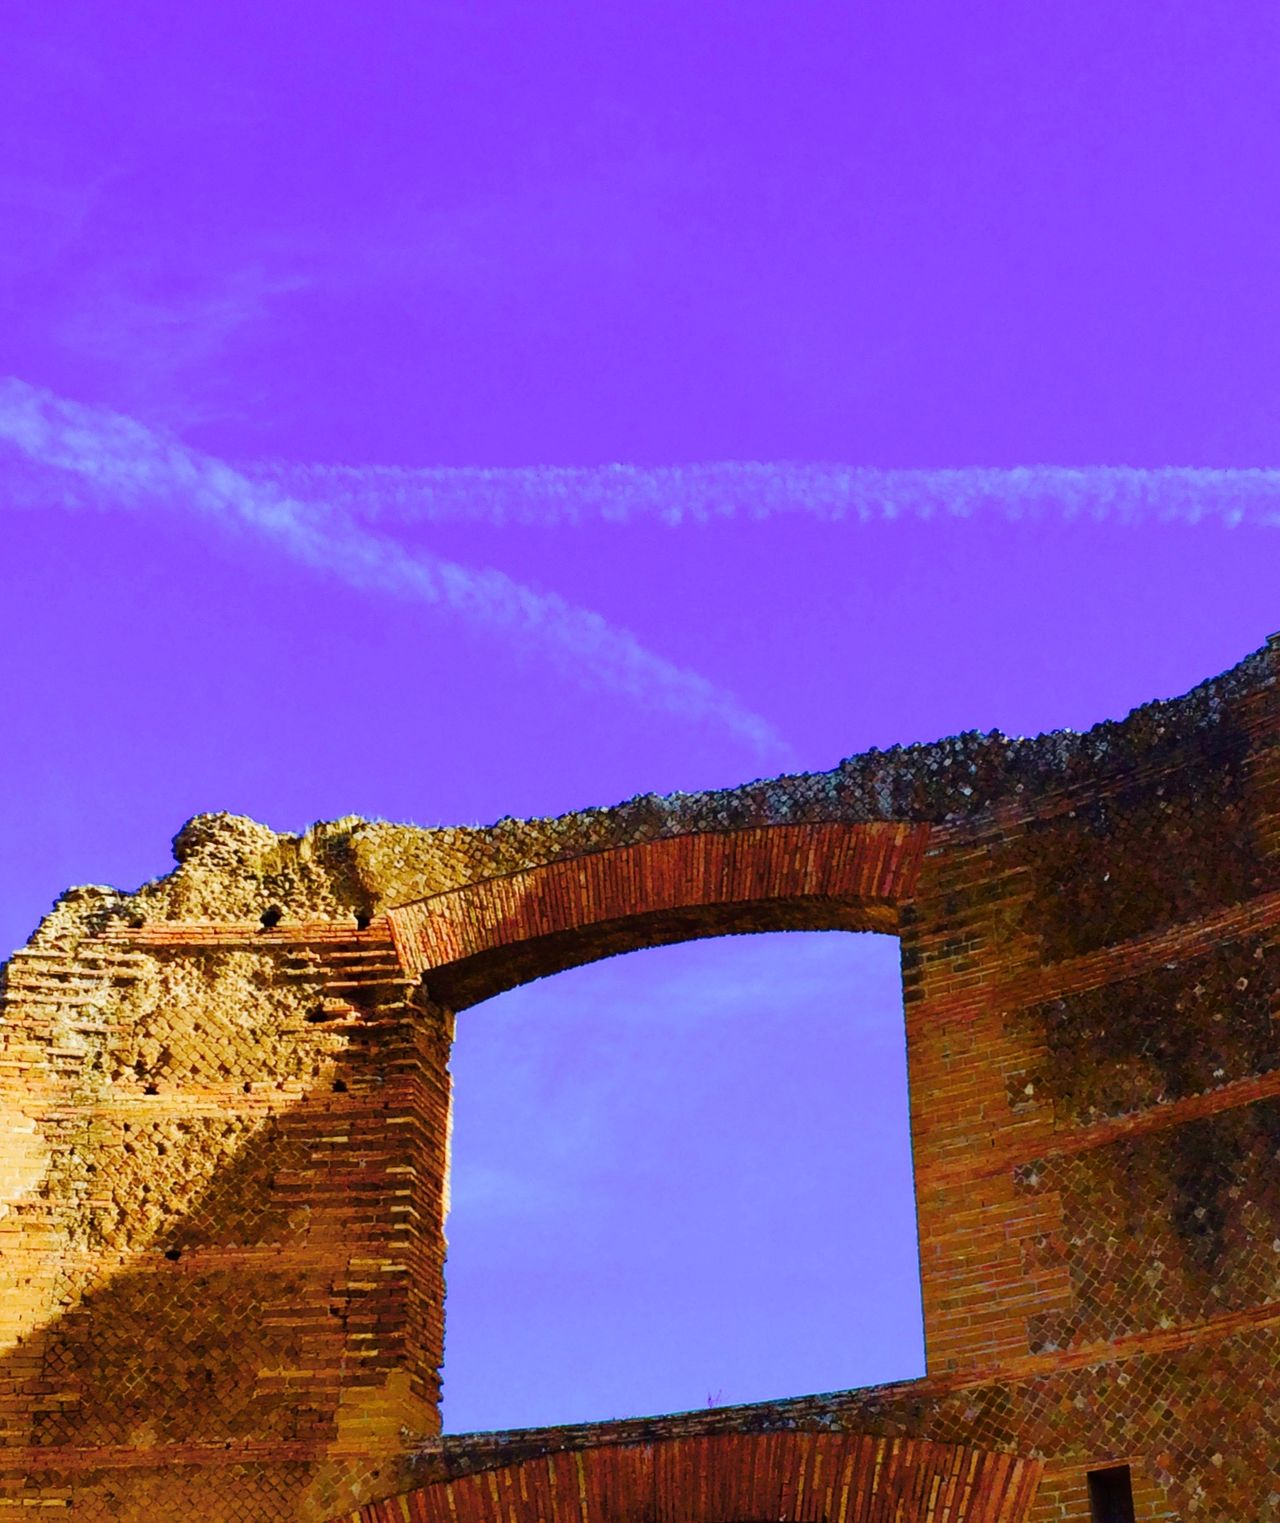 Ancient Civilization Colorsplash Edited Hadrian's Villa History Look Up Old Roma Ruined Skyline Tivoli Villa Adriana Window Of The World  Windows IPhoneography Light And Shadows Pattern, Texture, Shape And Form Ancient Architecture Lookingup UNESCO World Heritage Site World Monuments Watch